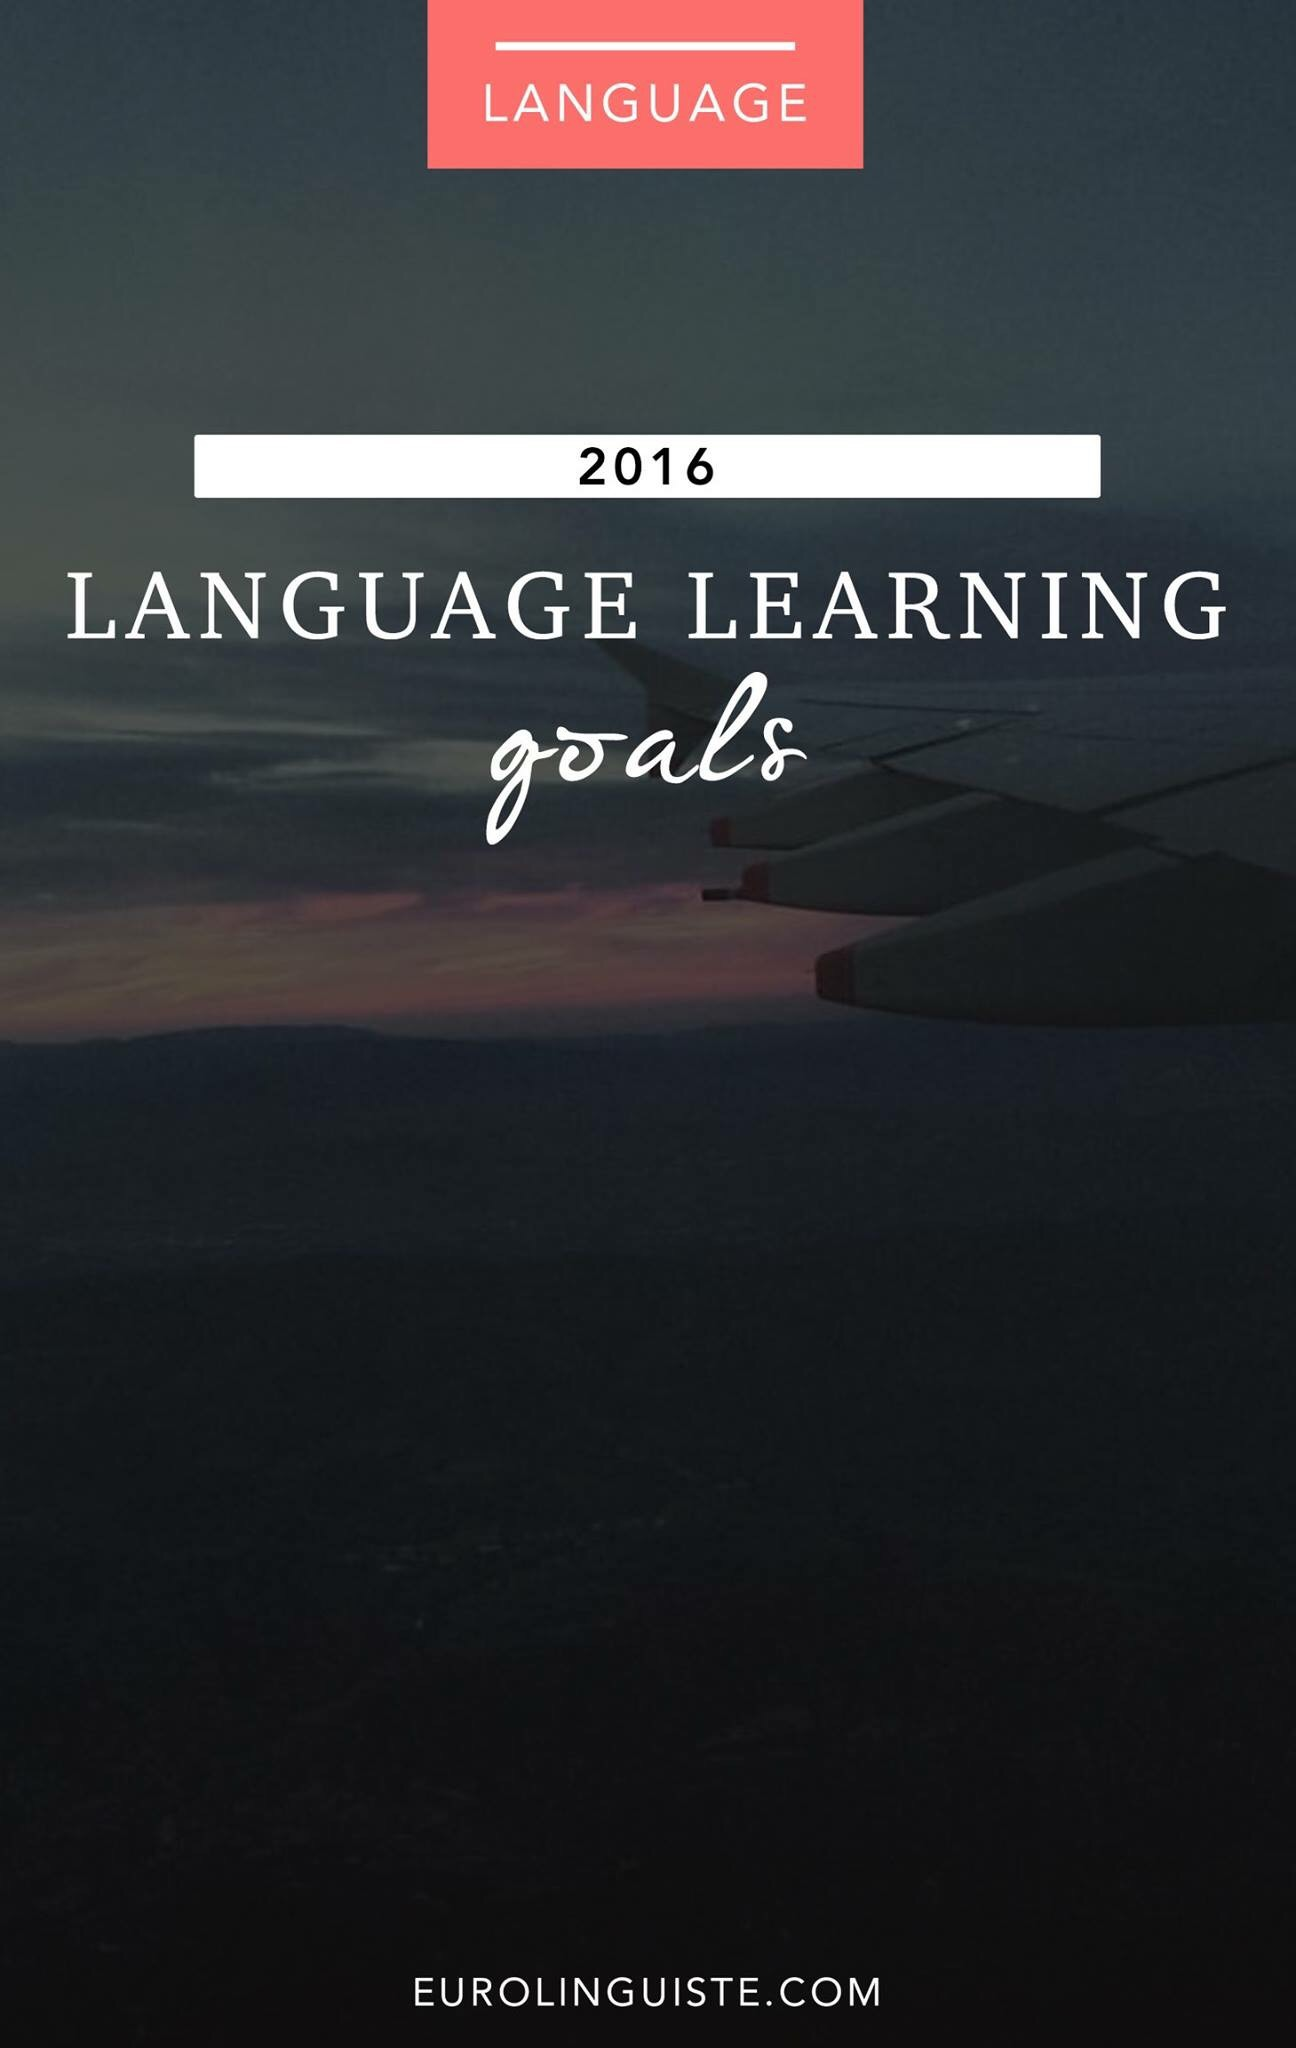 Language Learning Goals & Plans for 2016